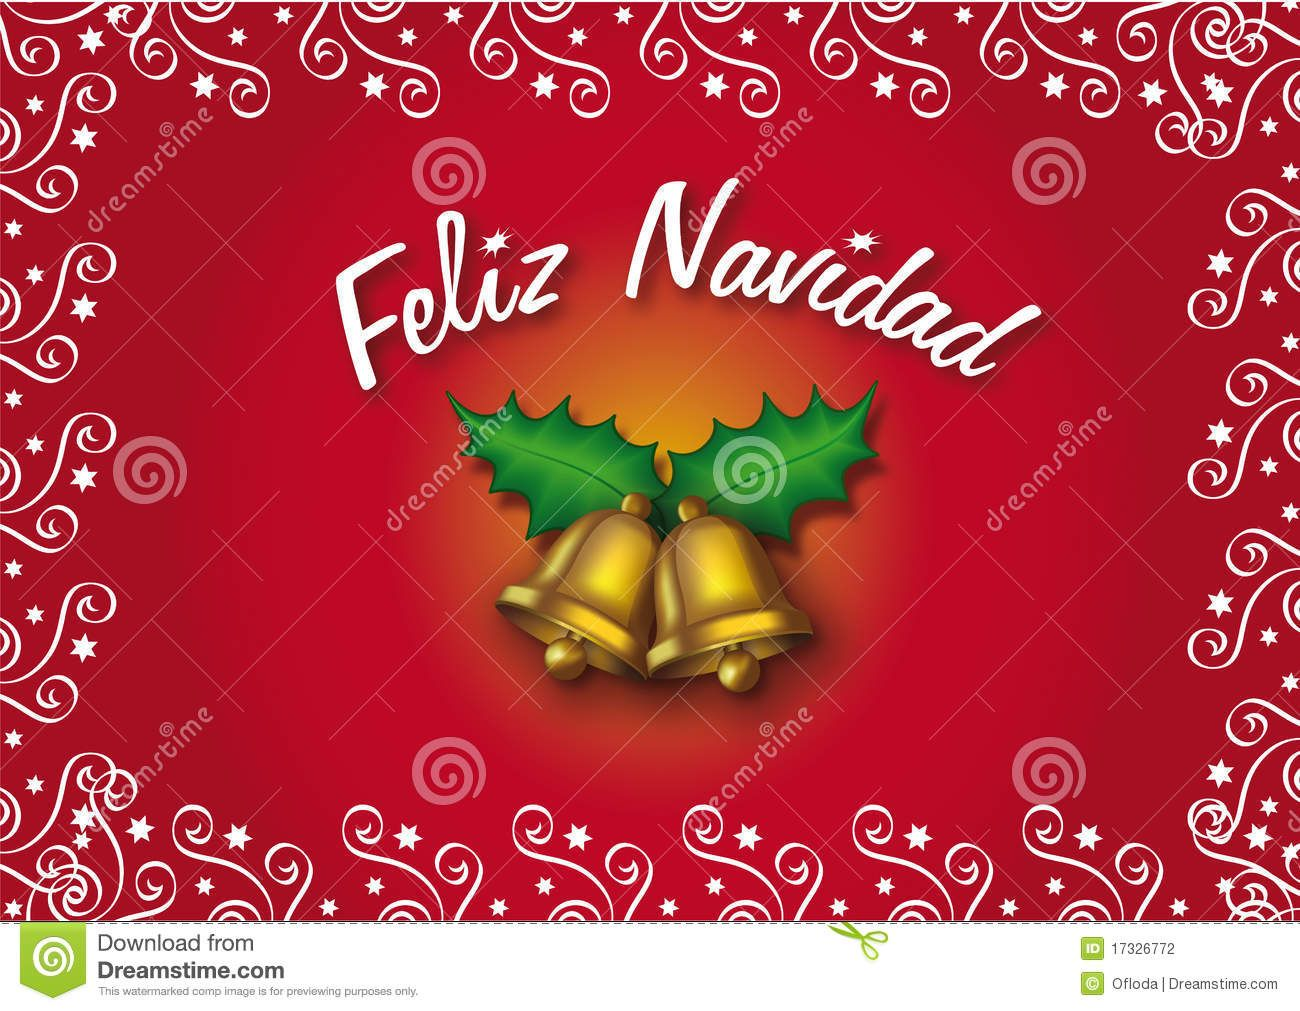 Merry Christmas Greetings Images Merry Christmas Pinterest